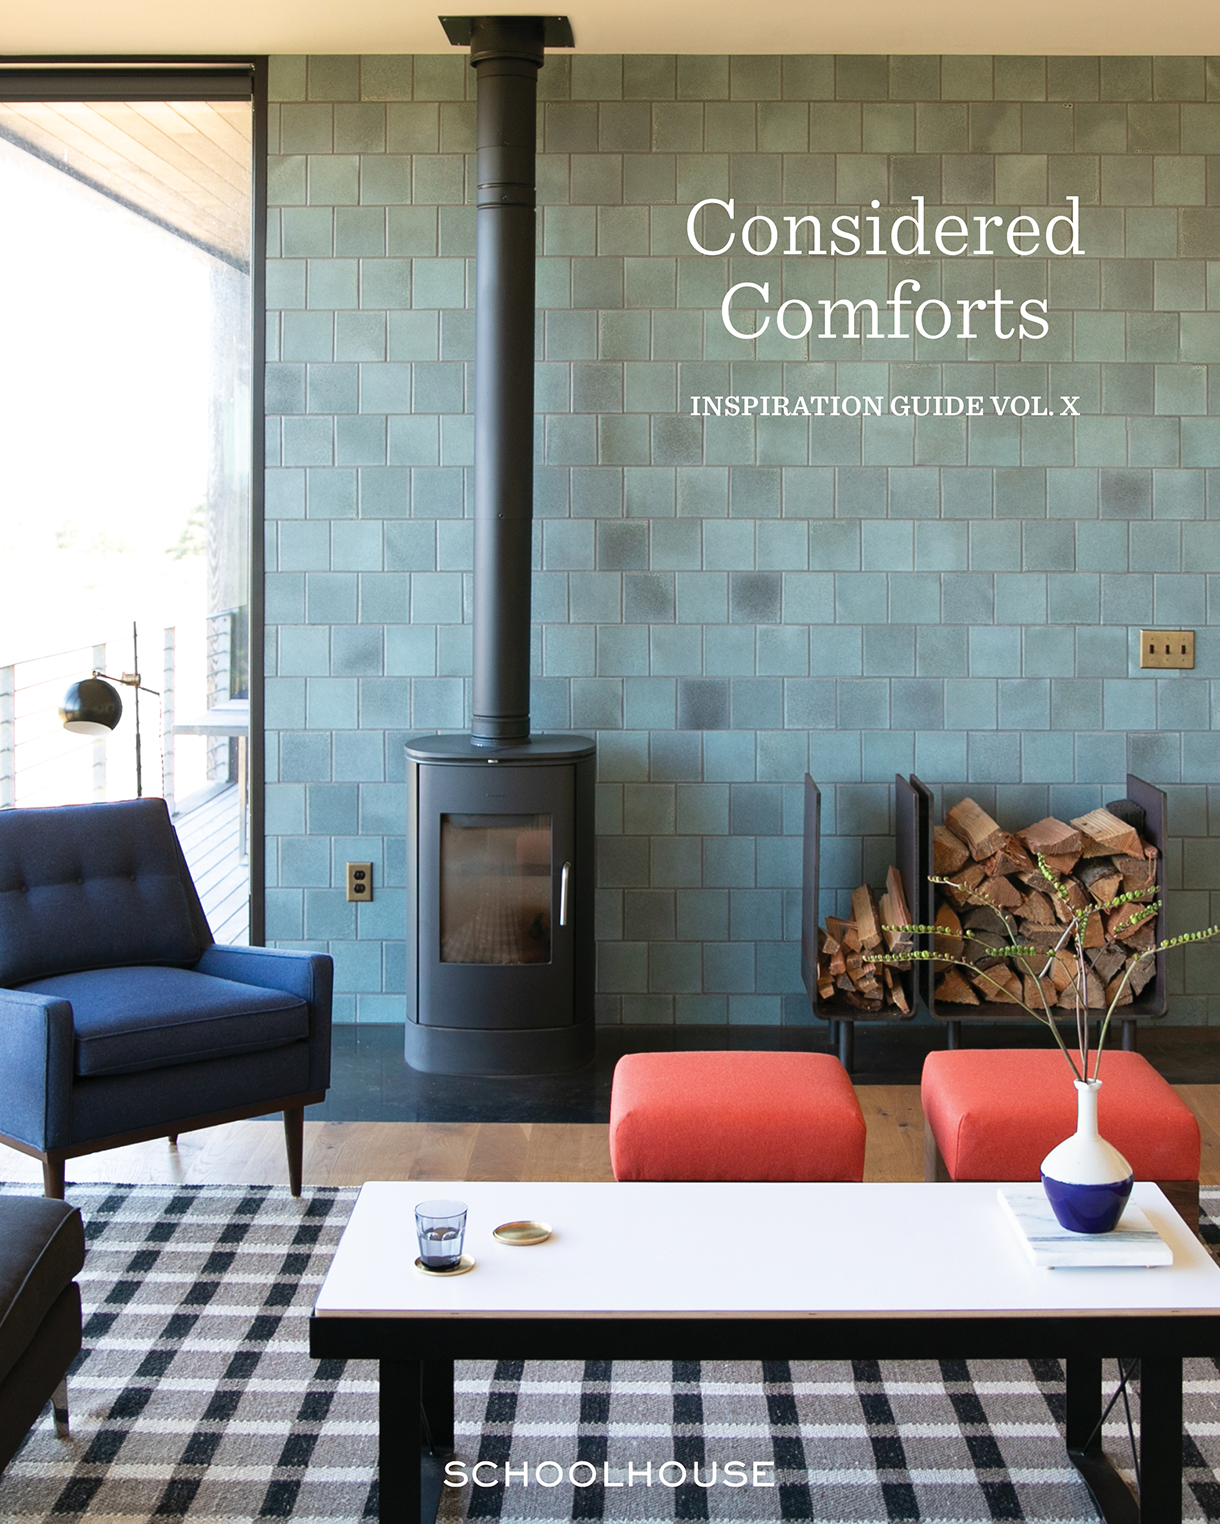 Considered Comforts